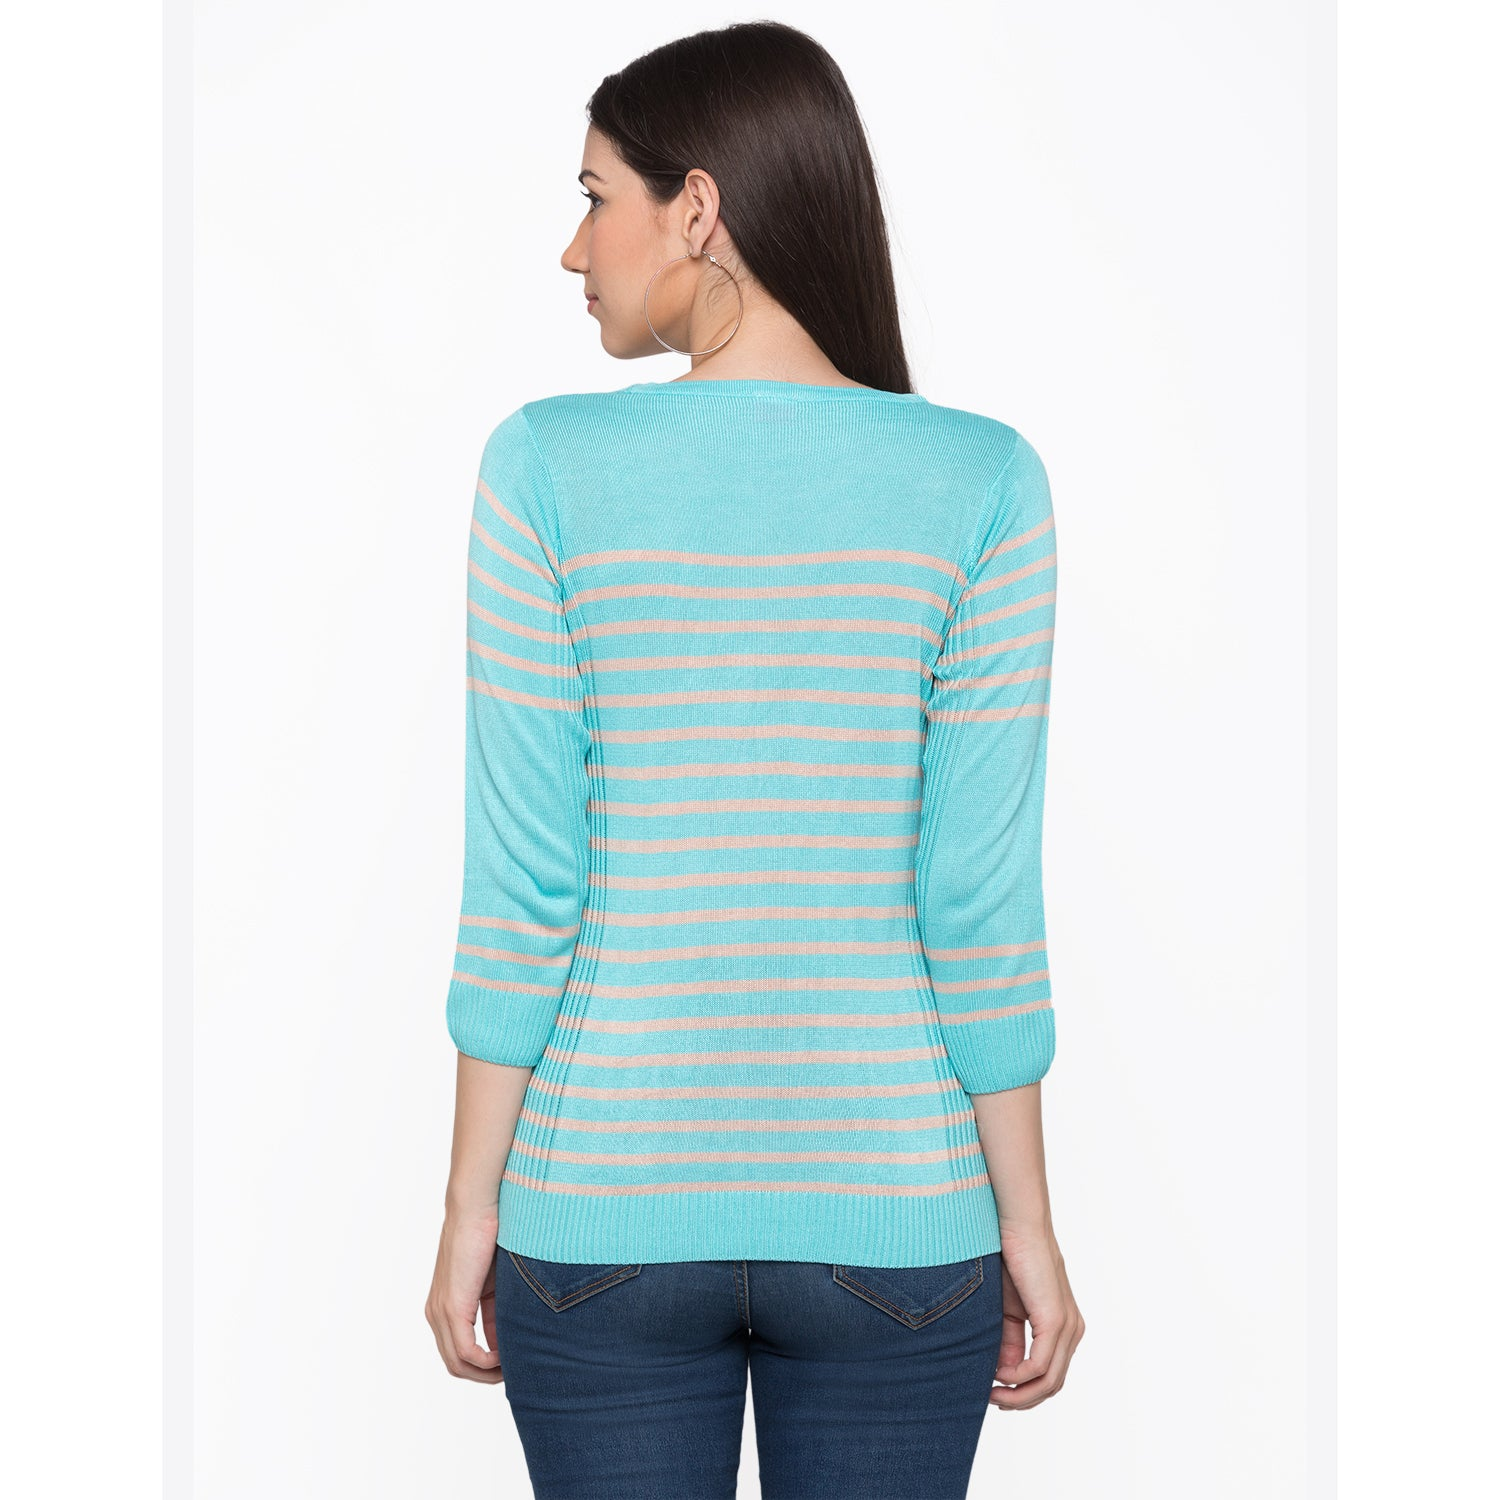 Globus Blue Striped Top3